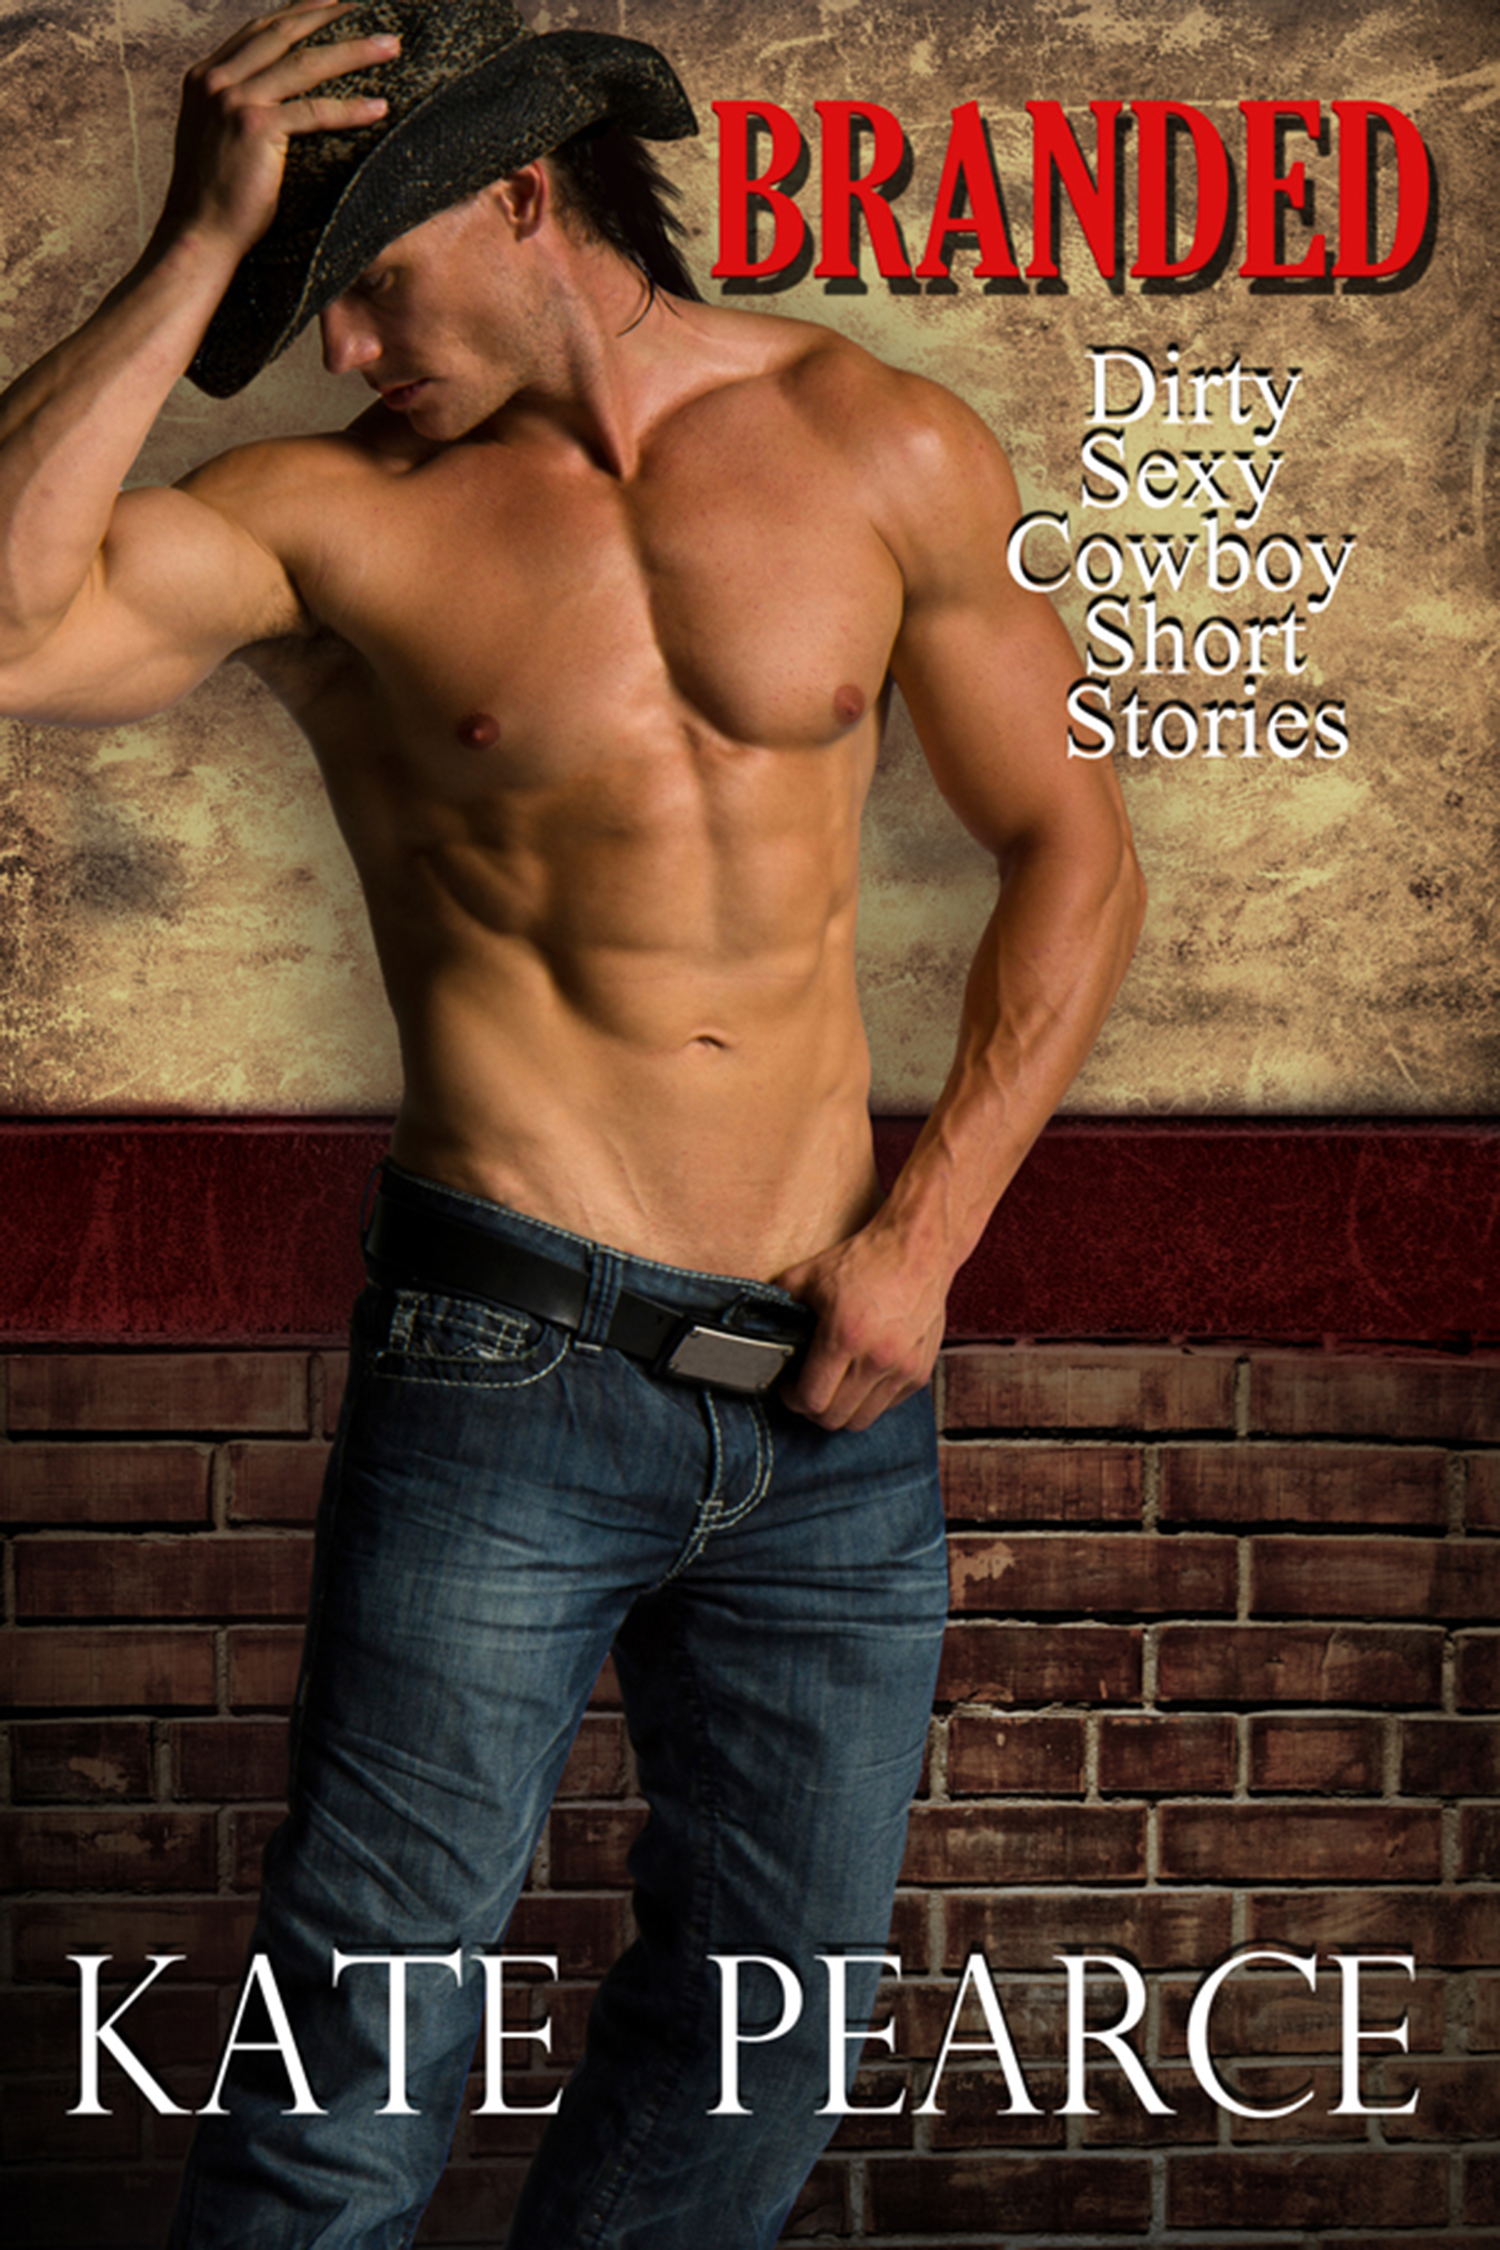 Kate Pearce - Branded: Dirty Sexy Cowboy Short Stories